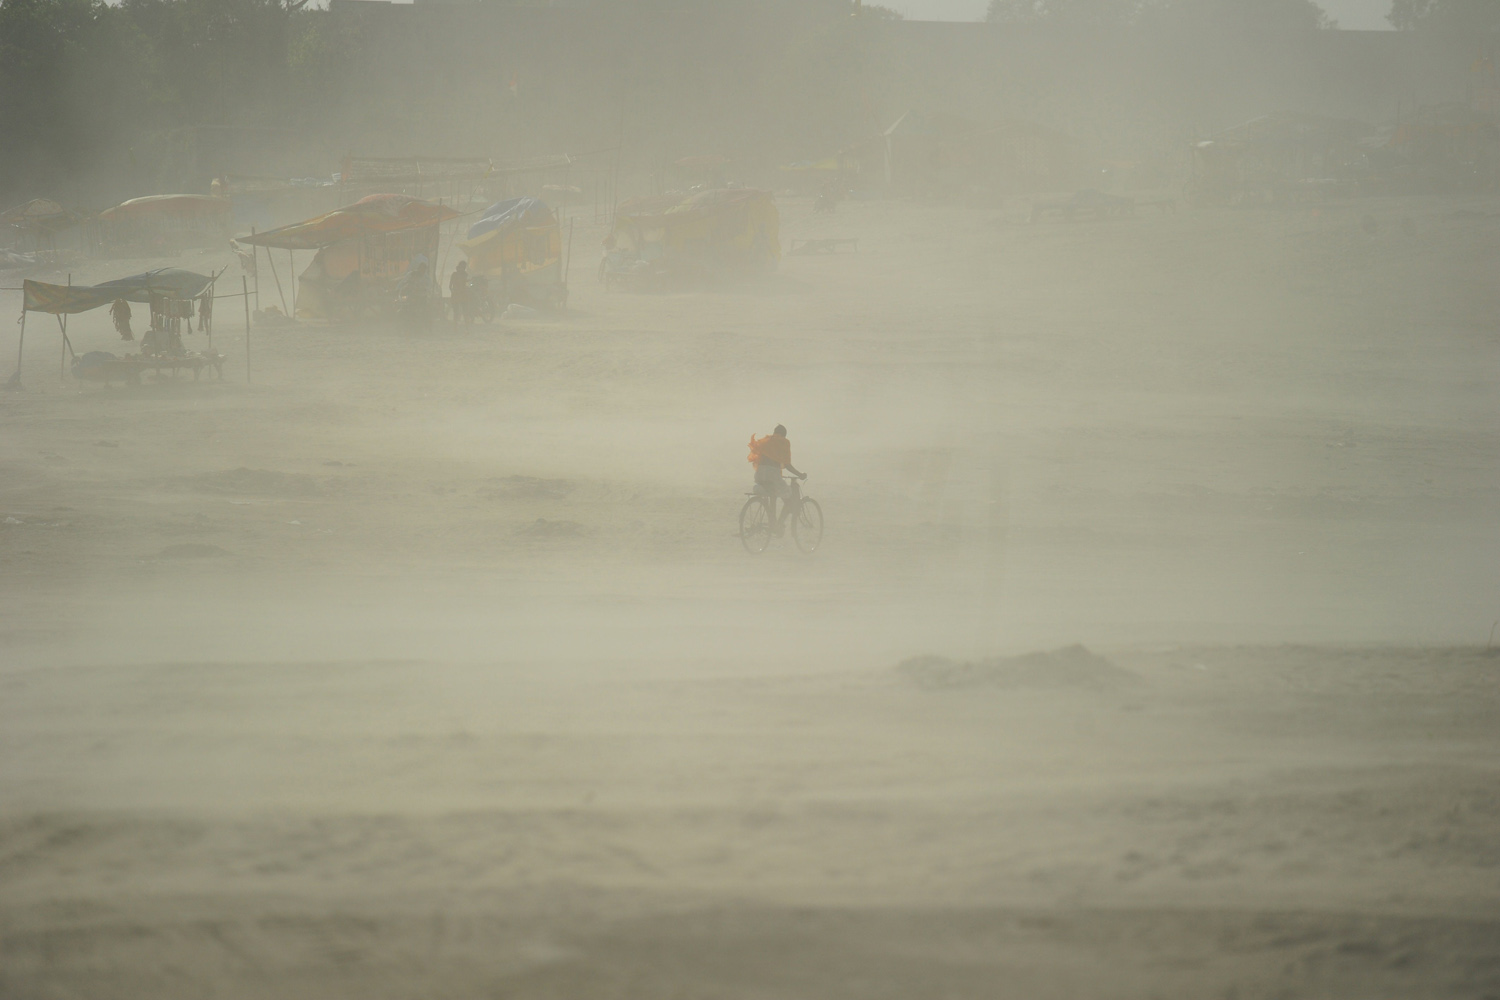 Apr. 5, 2014. A Hindu devotee rides his bicycle through a dust storm at the Sangam after taking a holy dip at the confluence of the rivers Ganges, Yamuna and mythical Saraswati, in Allahabad.